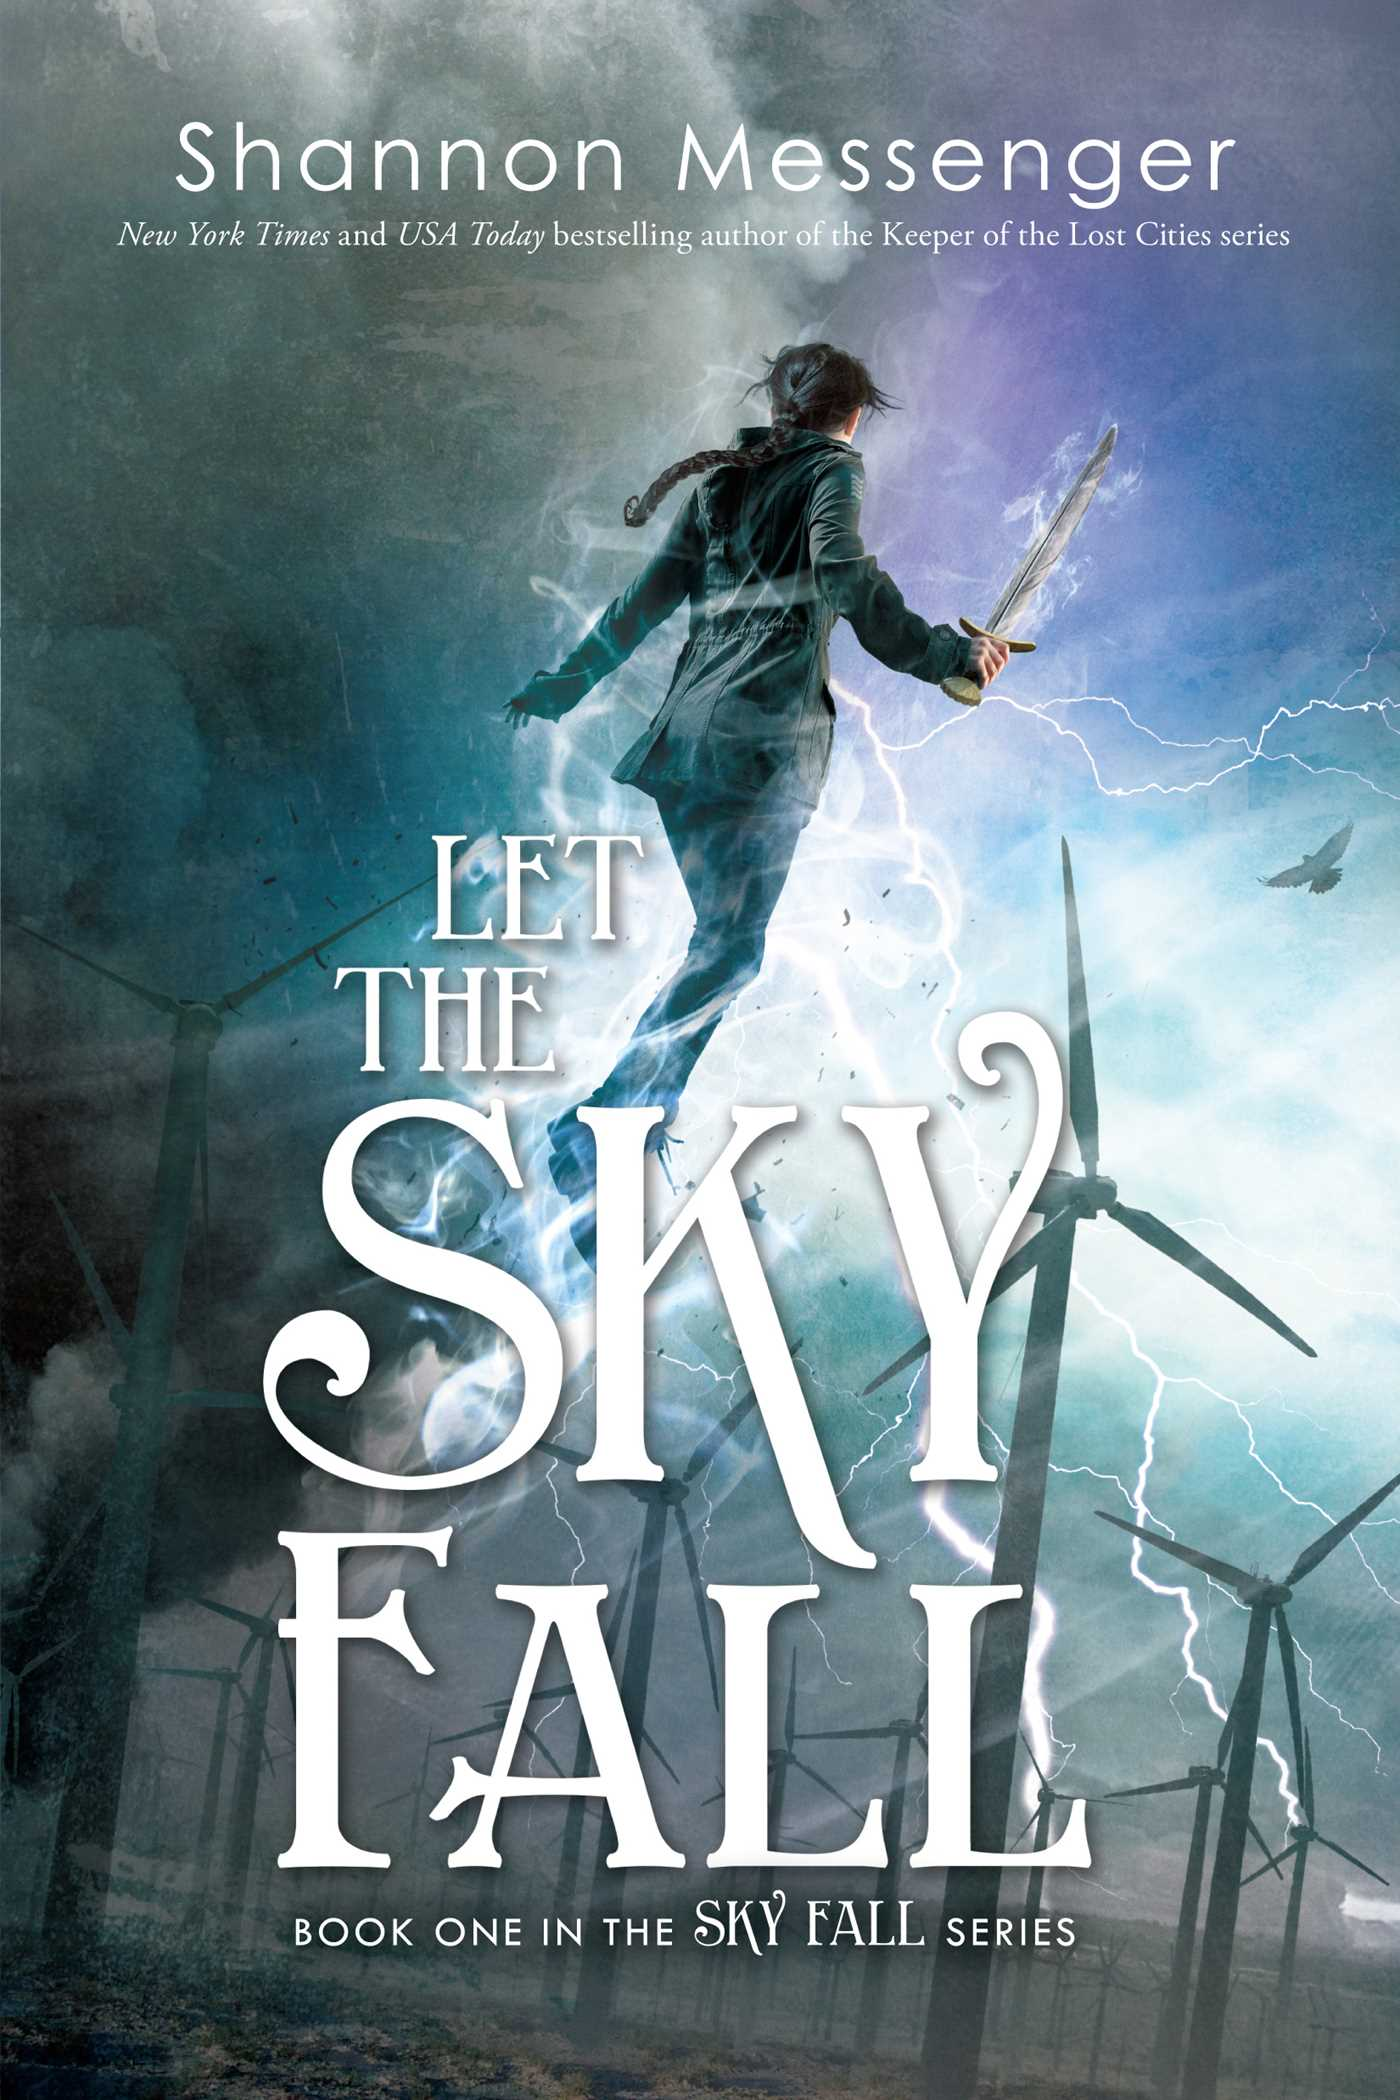 Let-the-sky-fall-9781442450431_hr